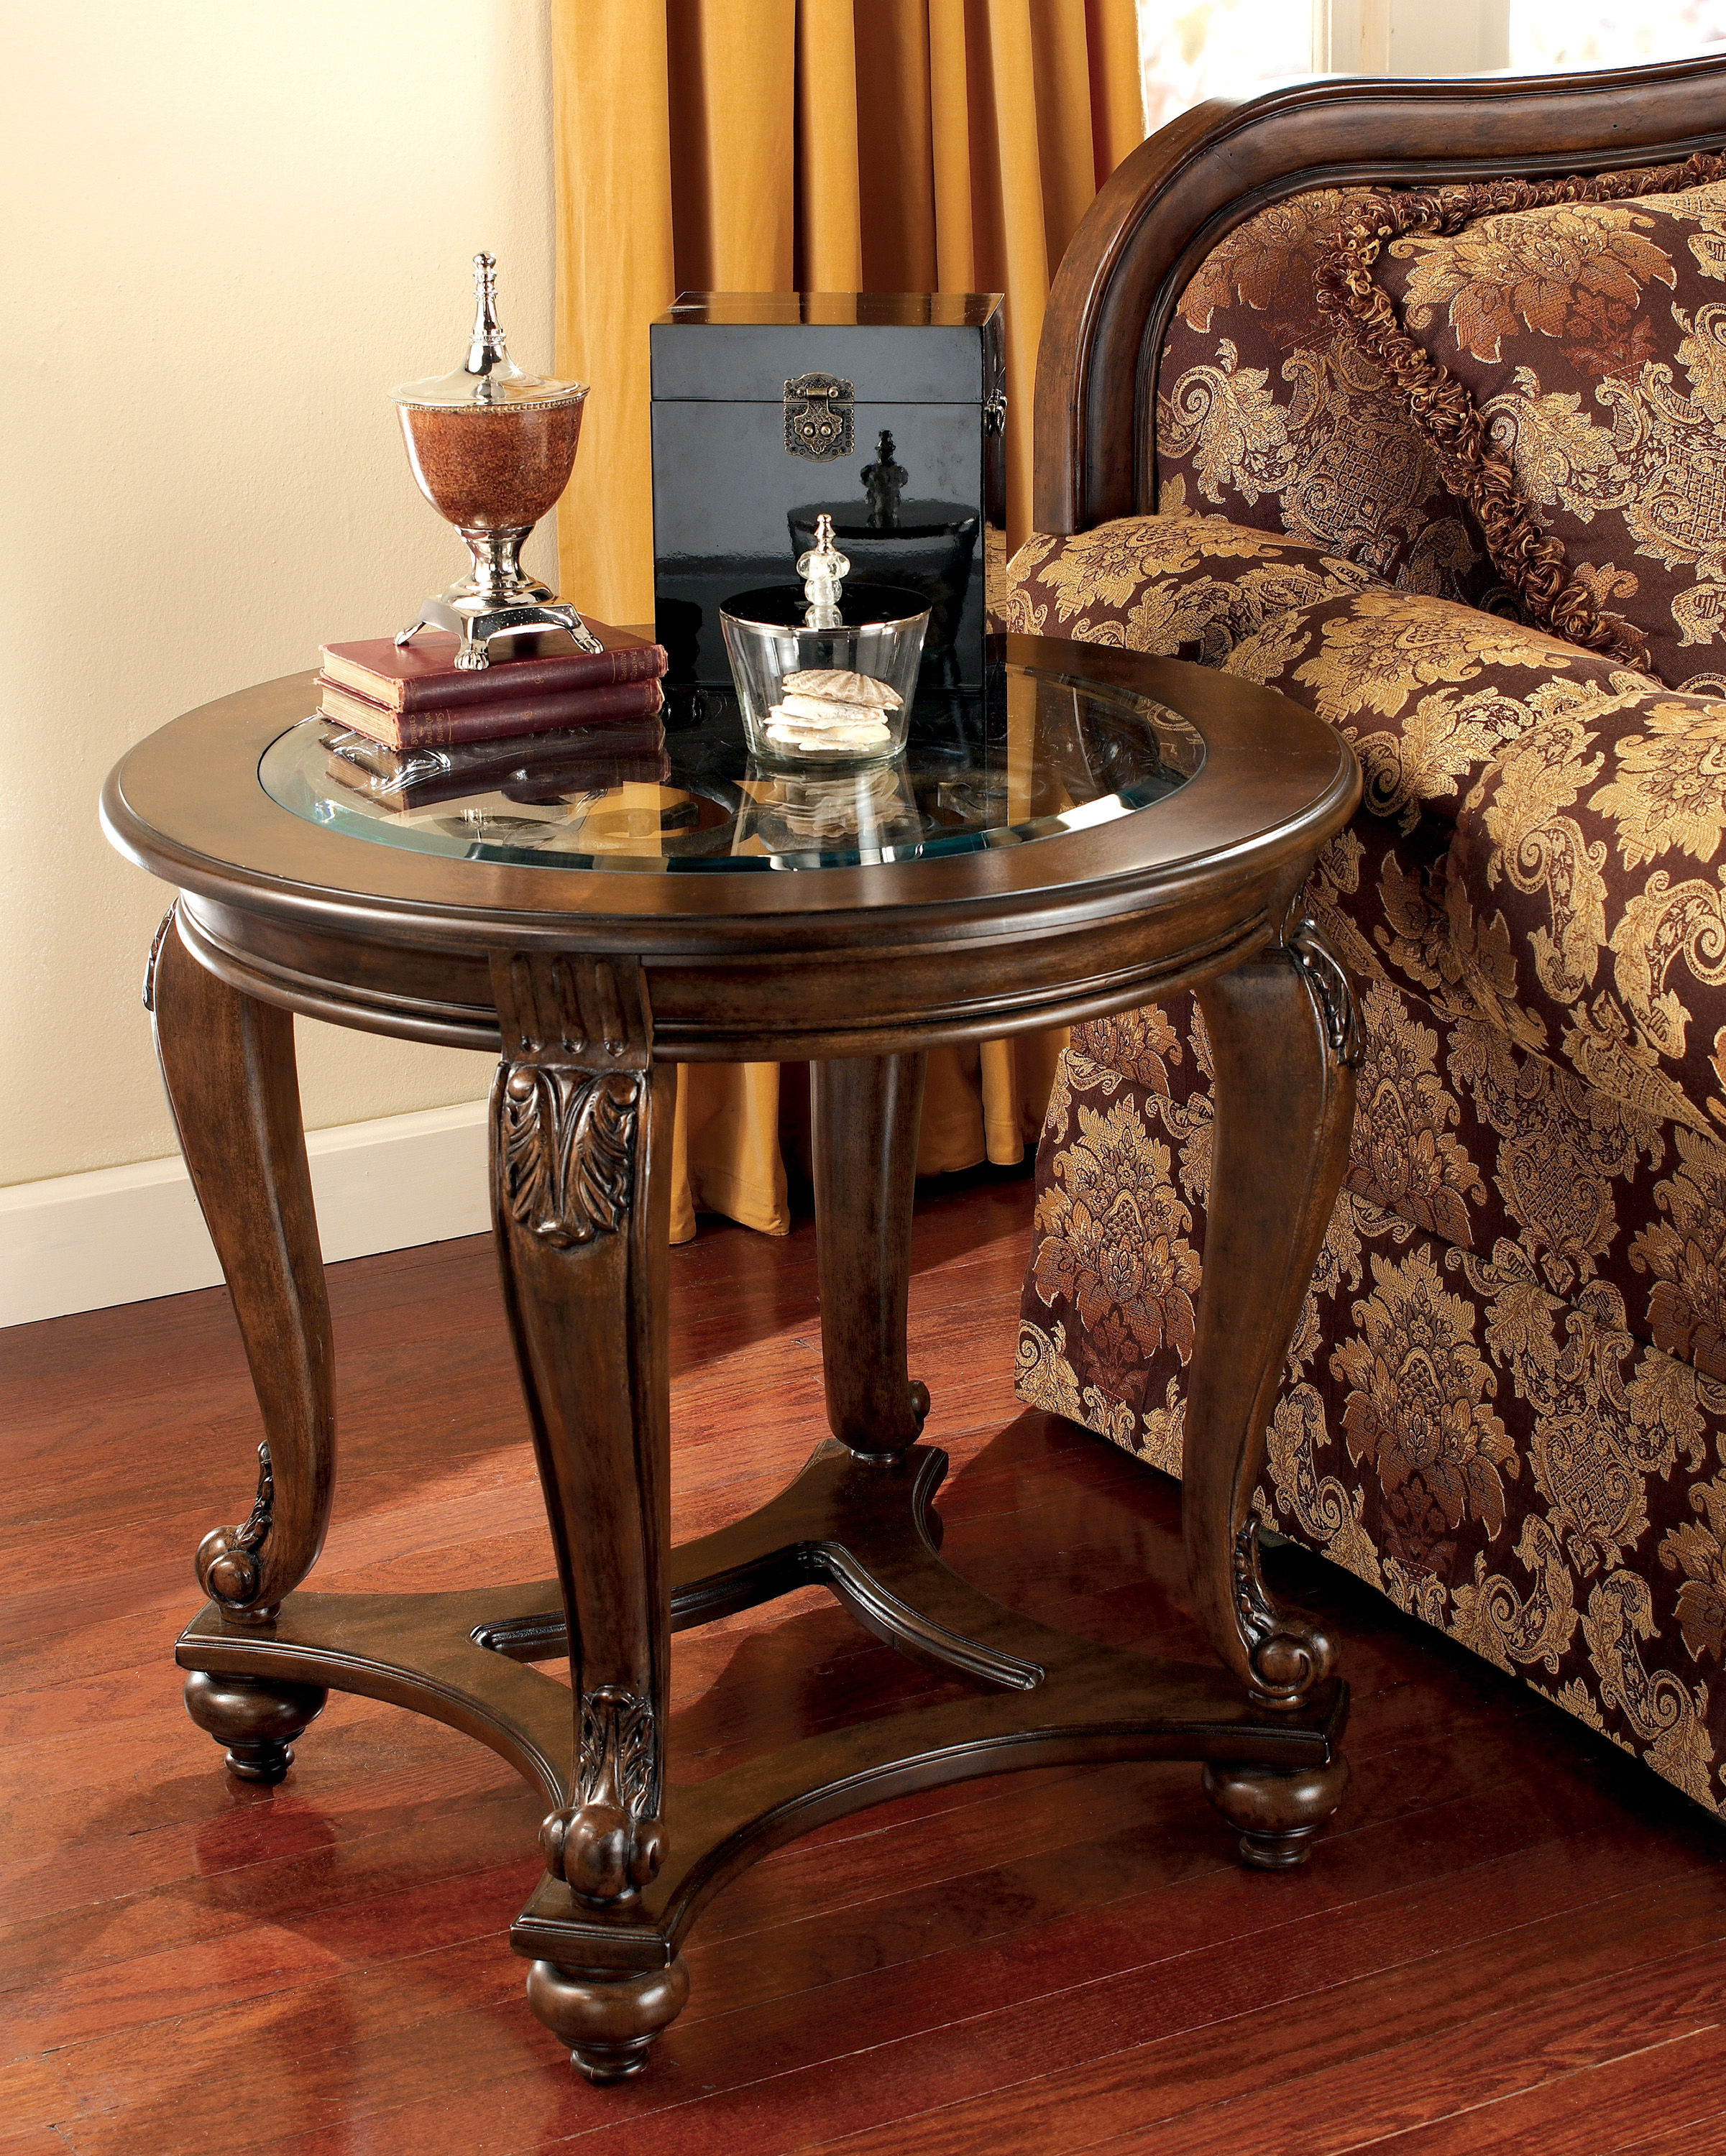 ashley furniture norcastle end table the classy home north shore click enlarge powell heirloom cherry jewelry armoire kmart summer reception inch black plastic water pipe ranch